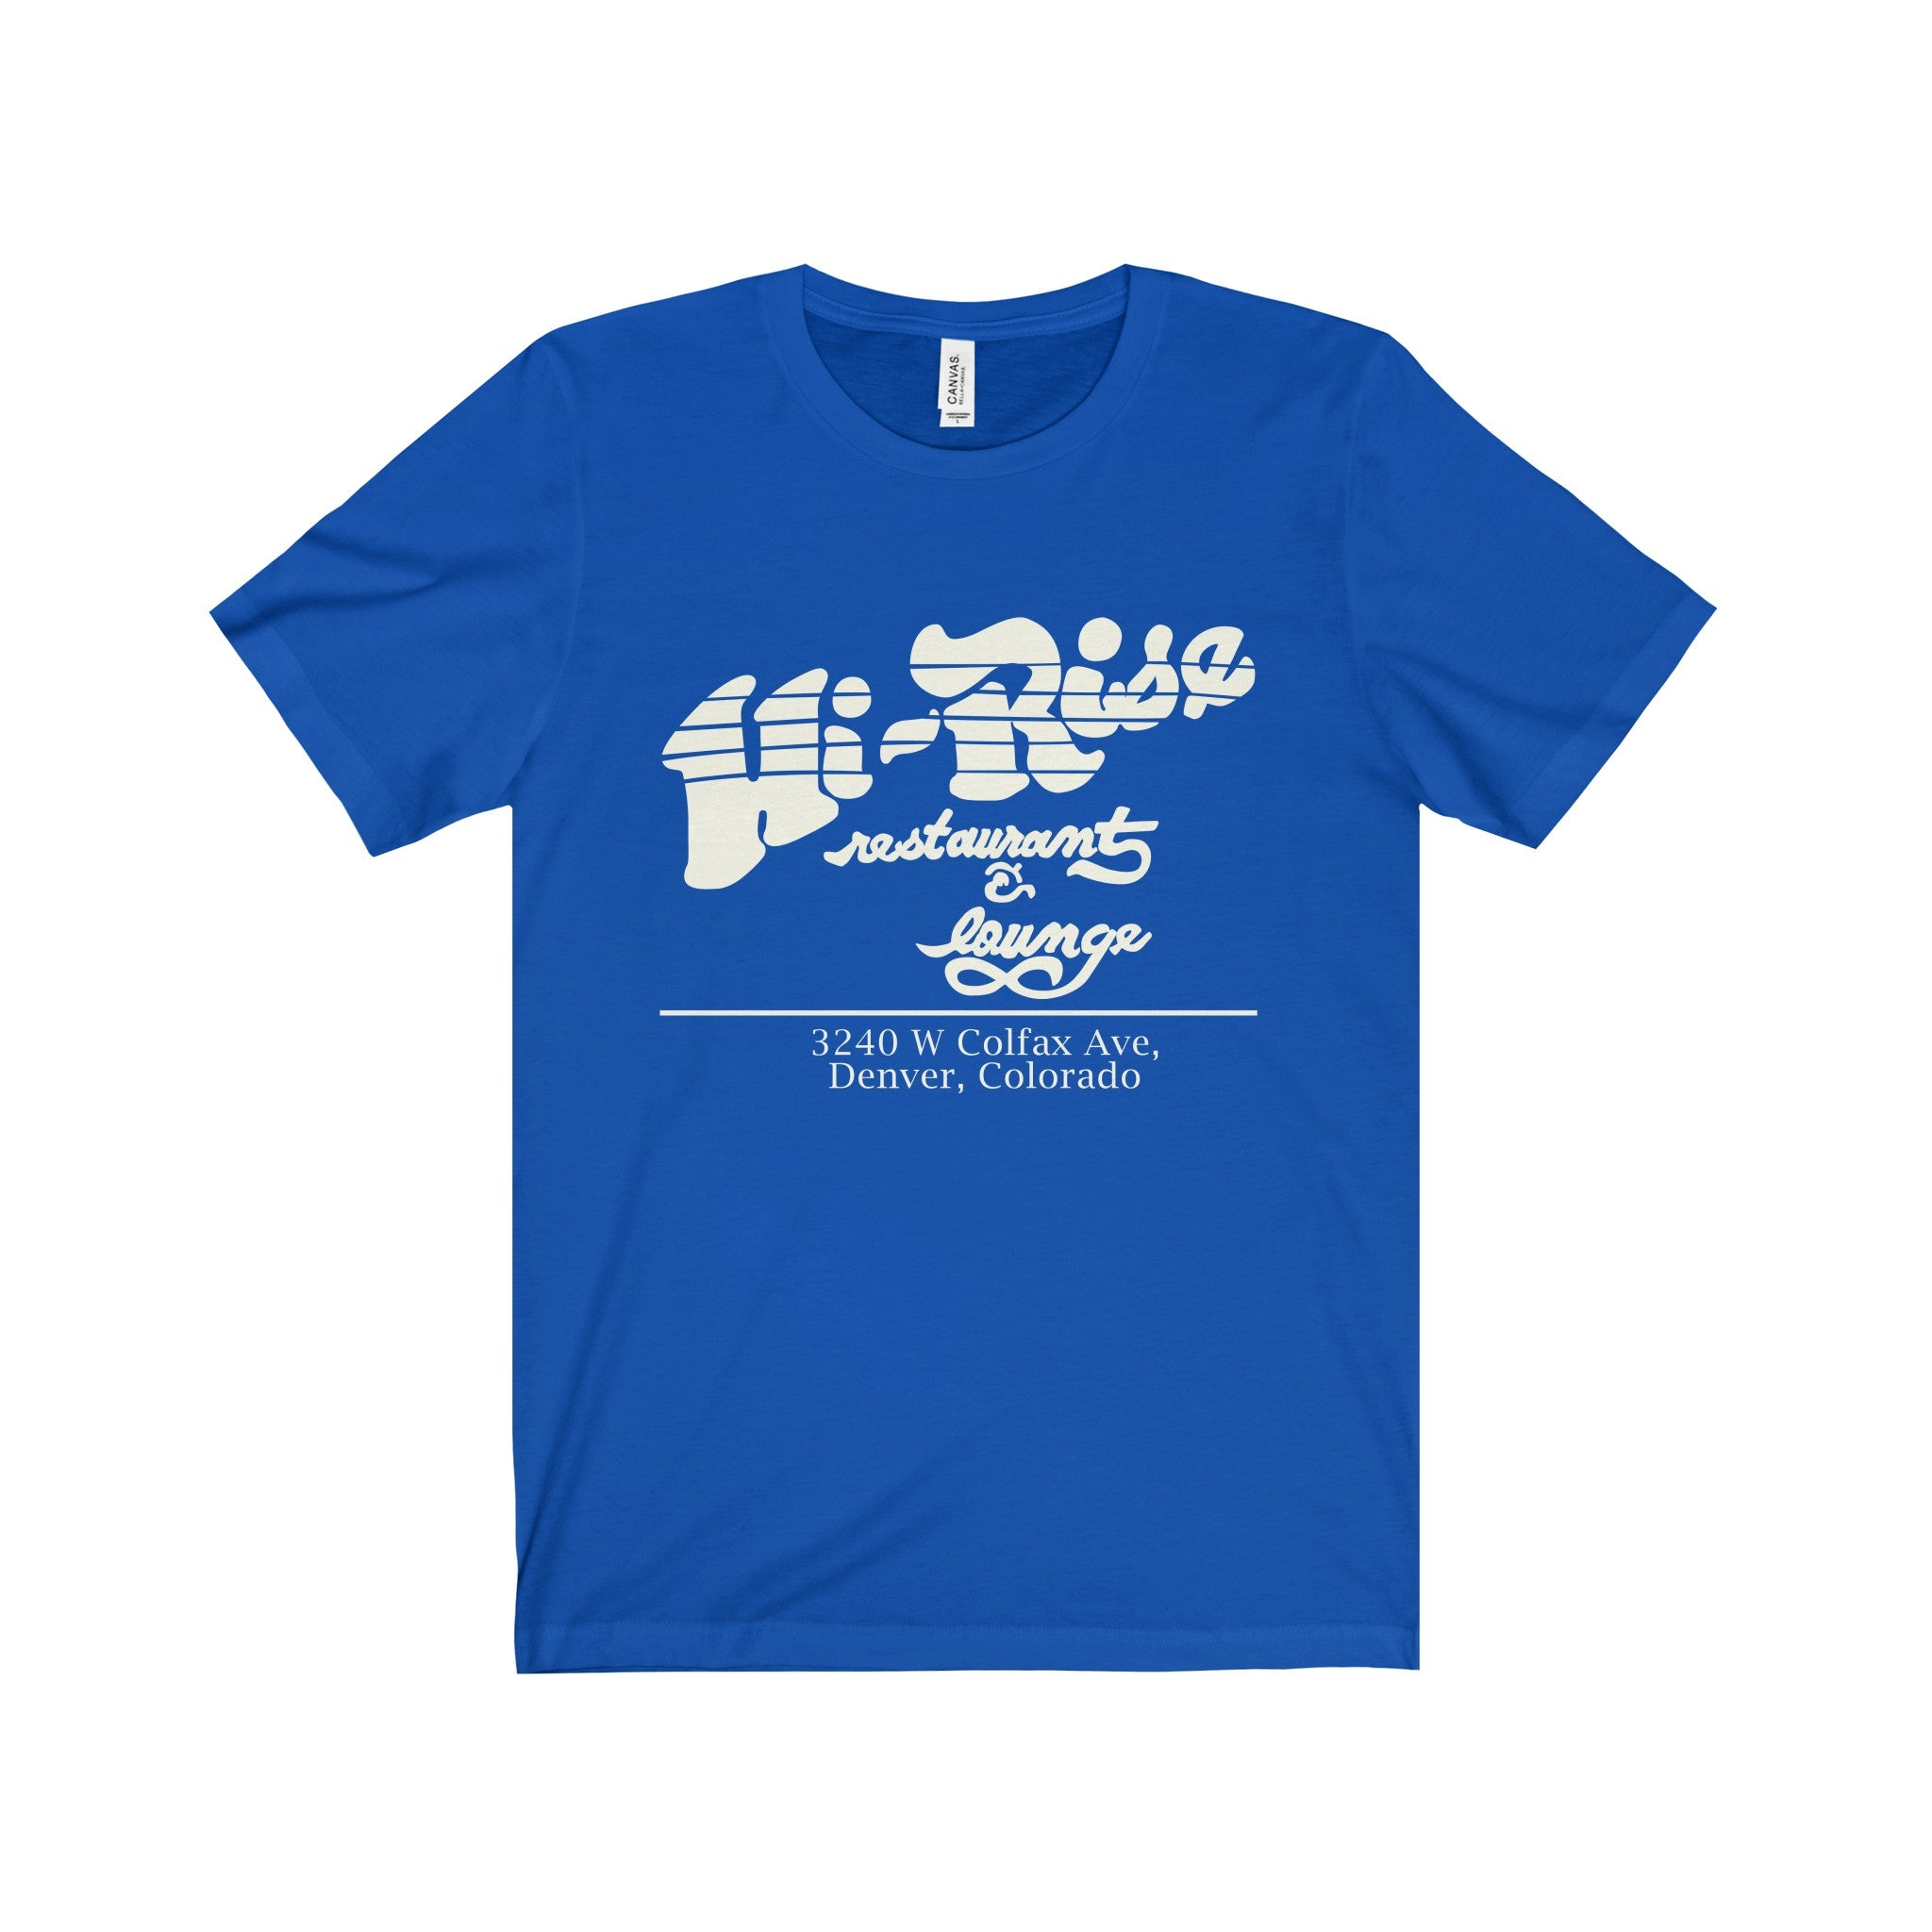 Hi-Rise Restaurant & Lounge T-Shirt